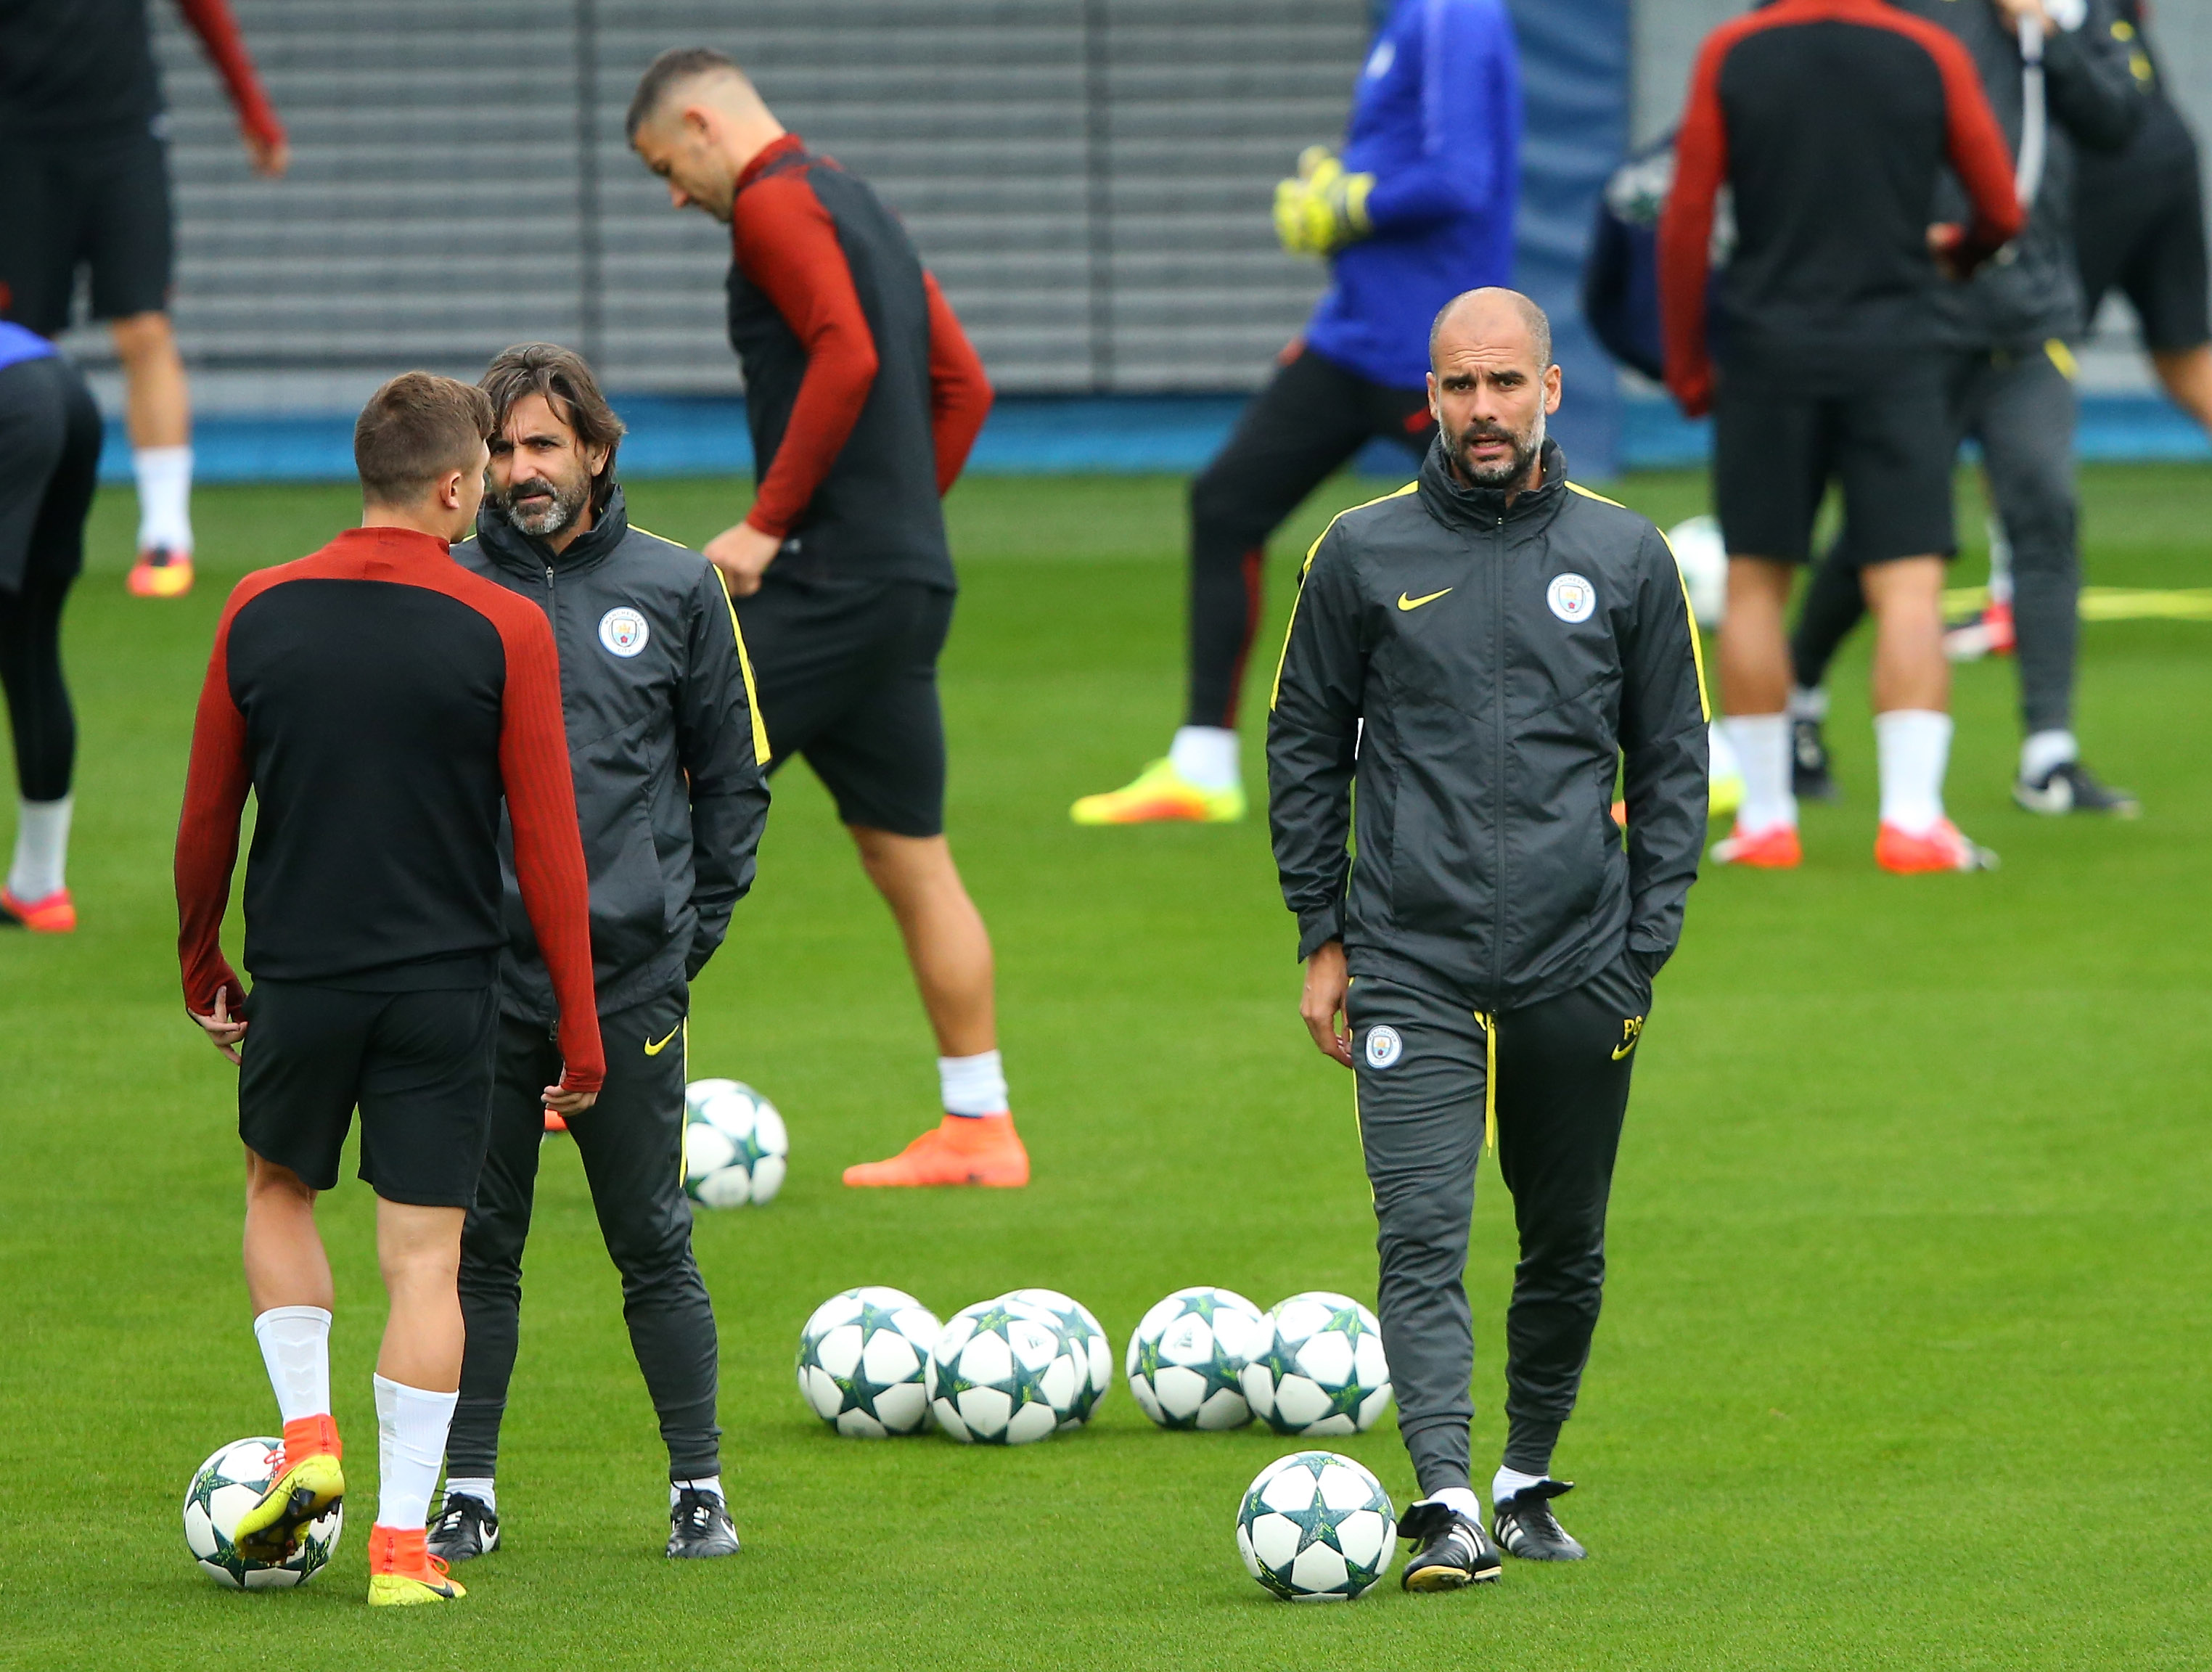 610623830-manchester-city-training-session